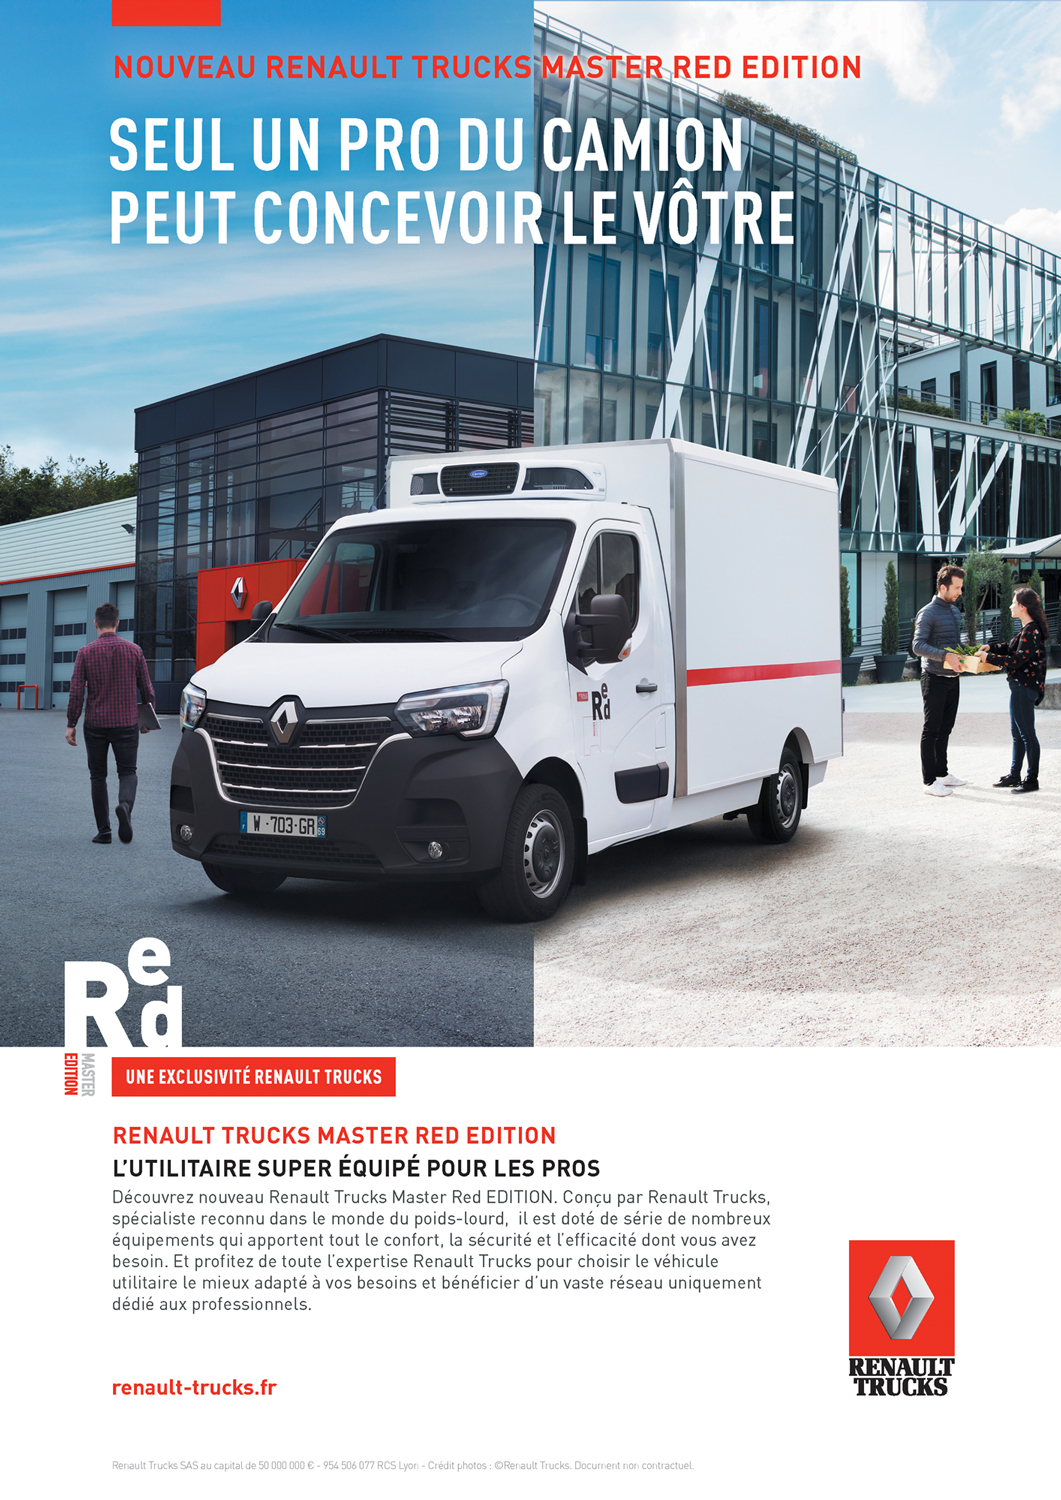 Approach_Retouch_London_Renault_Master_Vans_Trucks_002